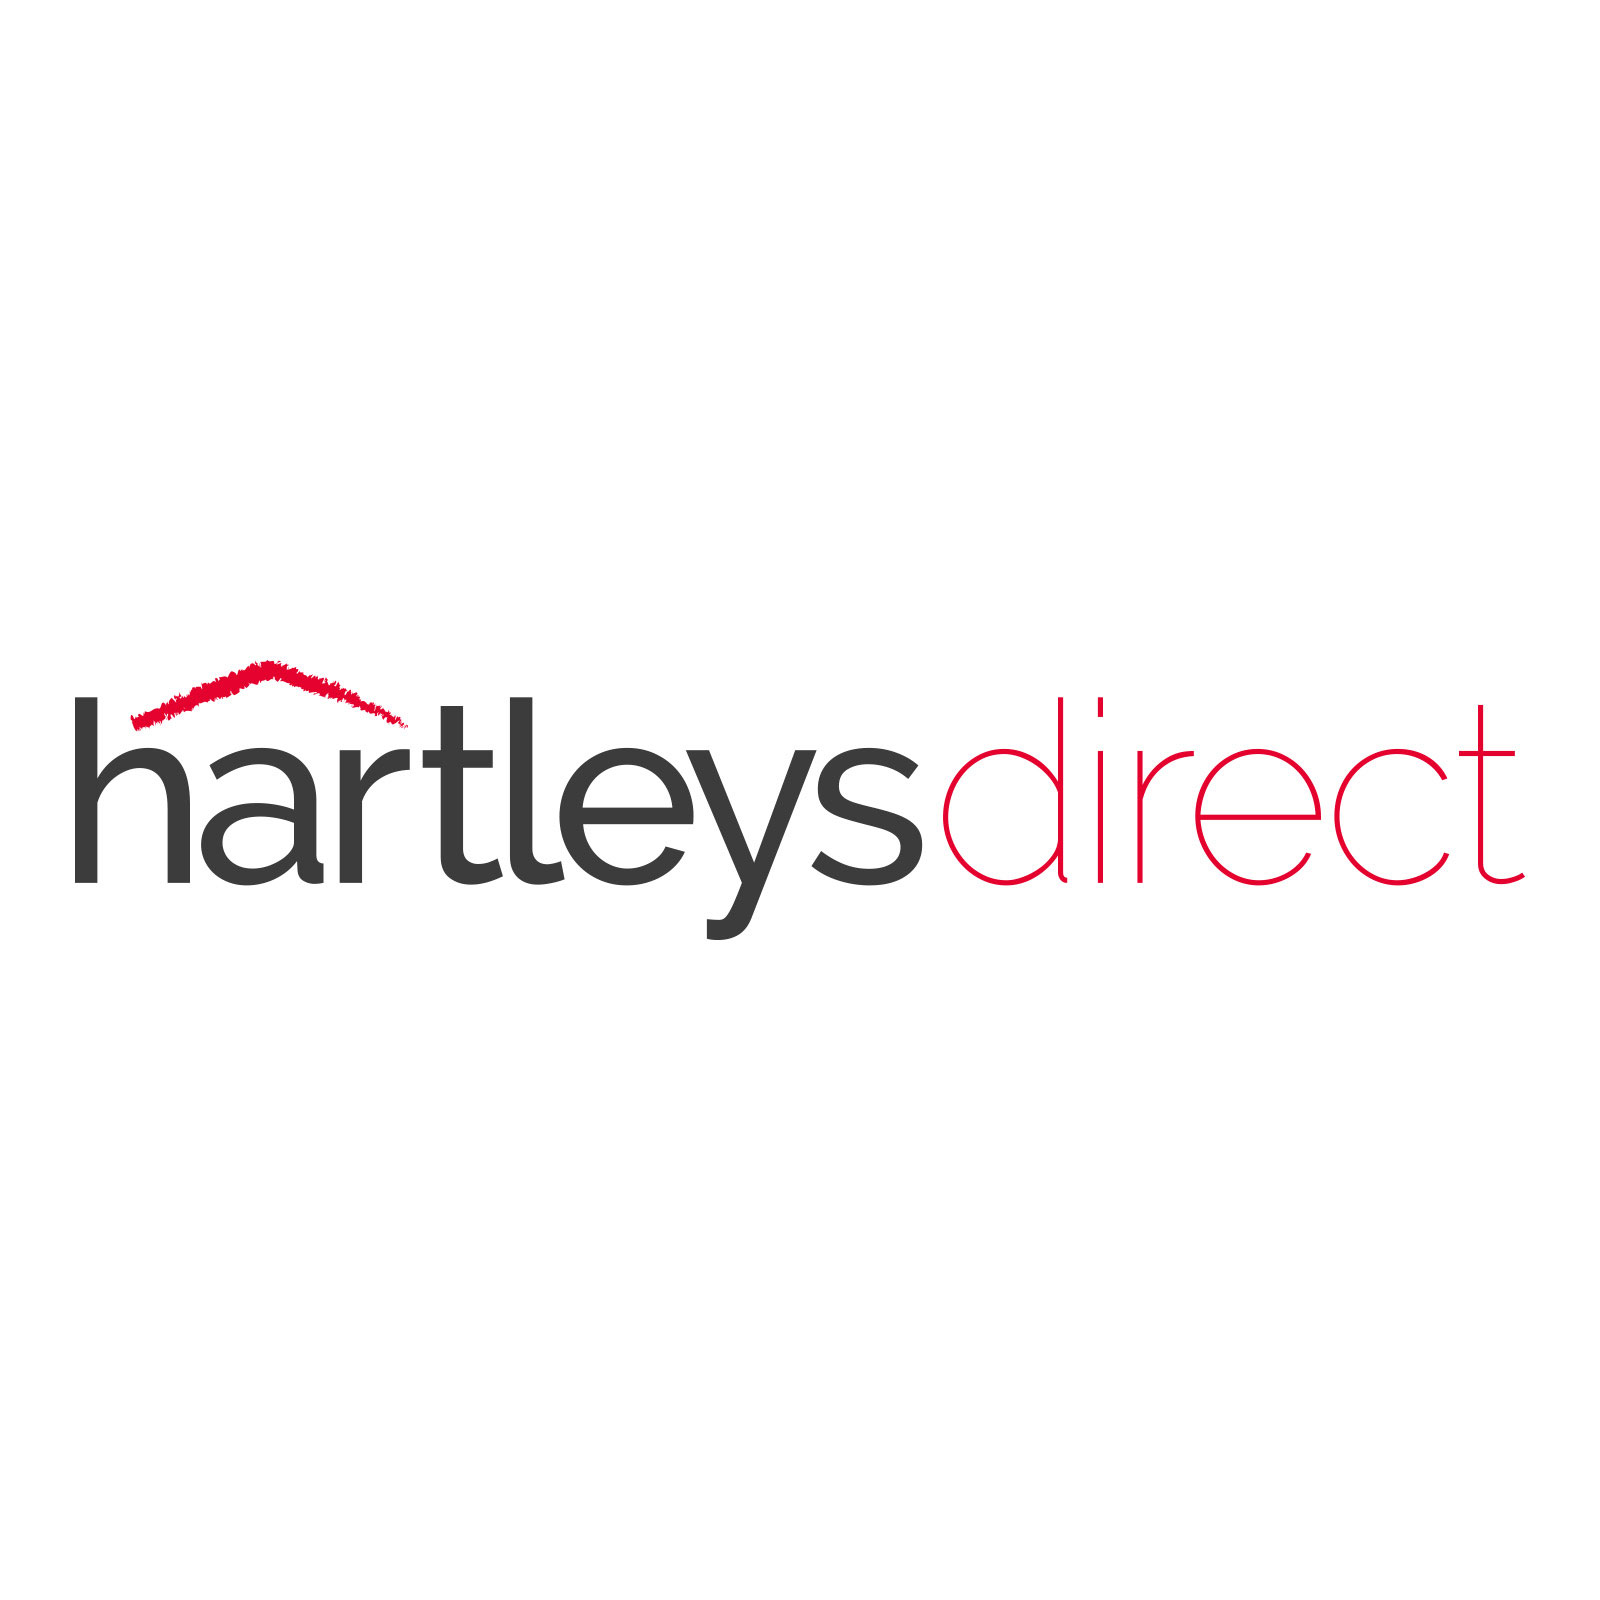 Hartleys-80cm-Monitor-Riser-Square-Shelf-with-Tube-Legs-Showing-Colours-on-White-Background.jpg